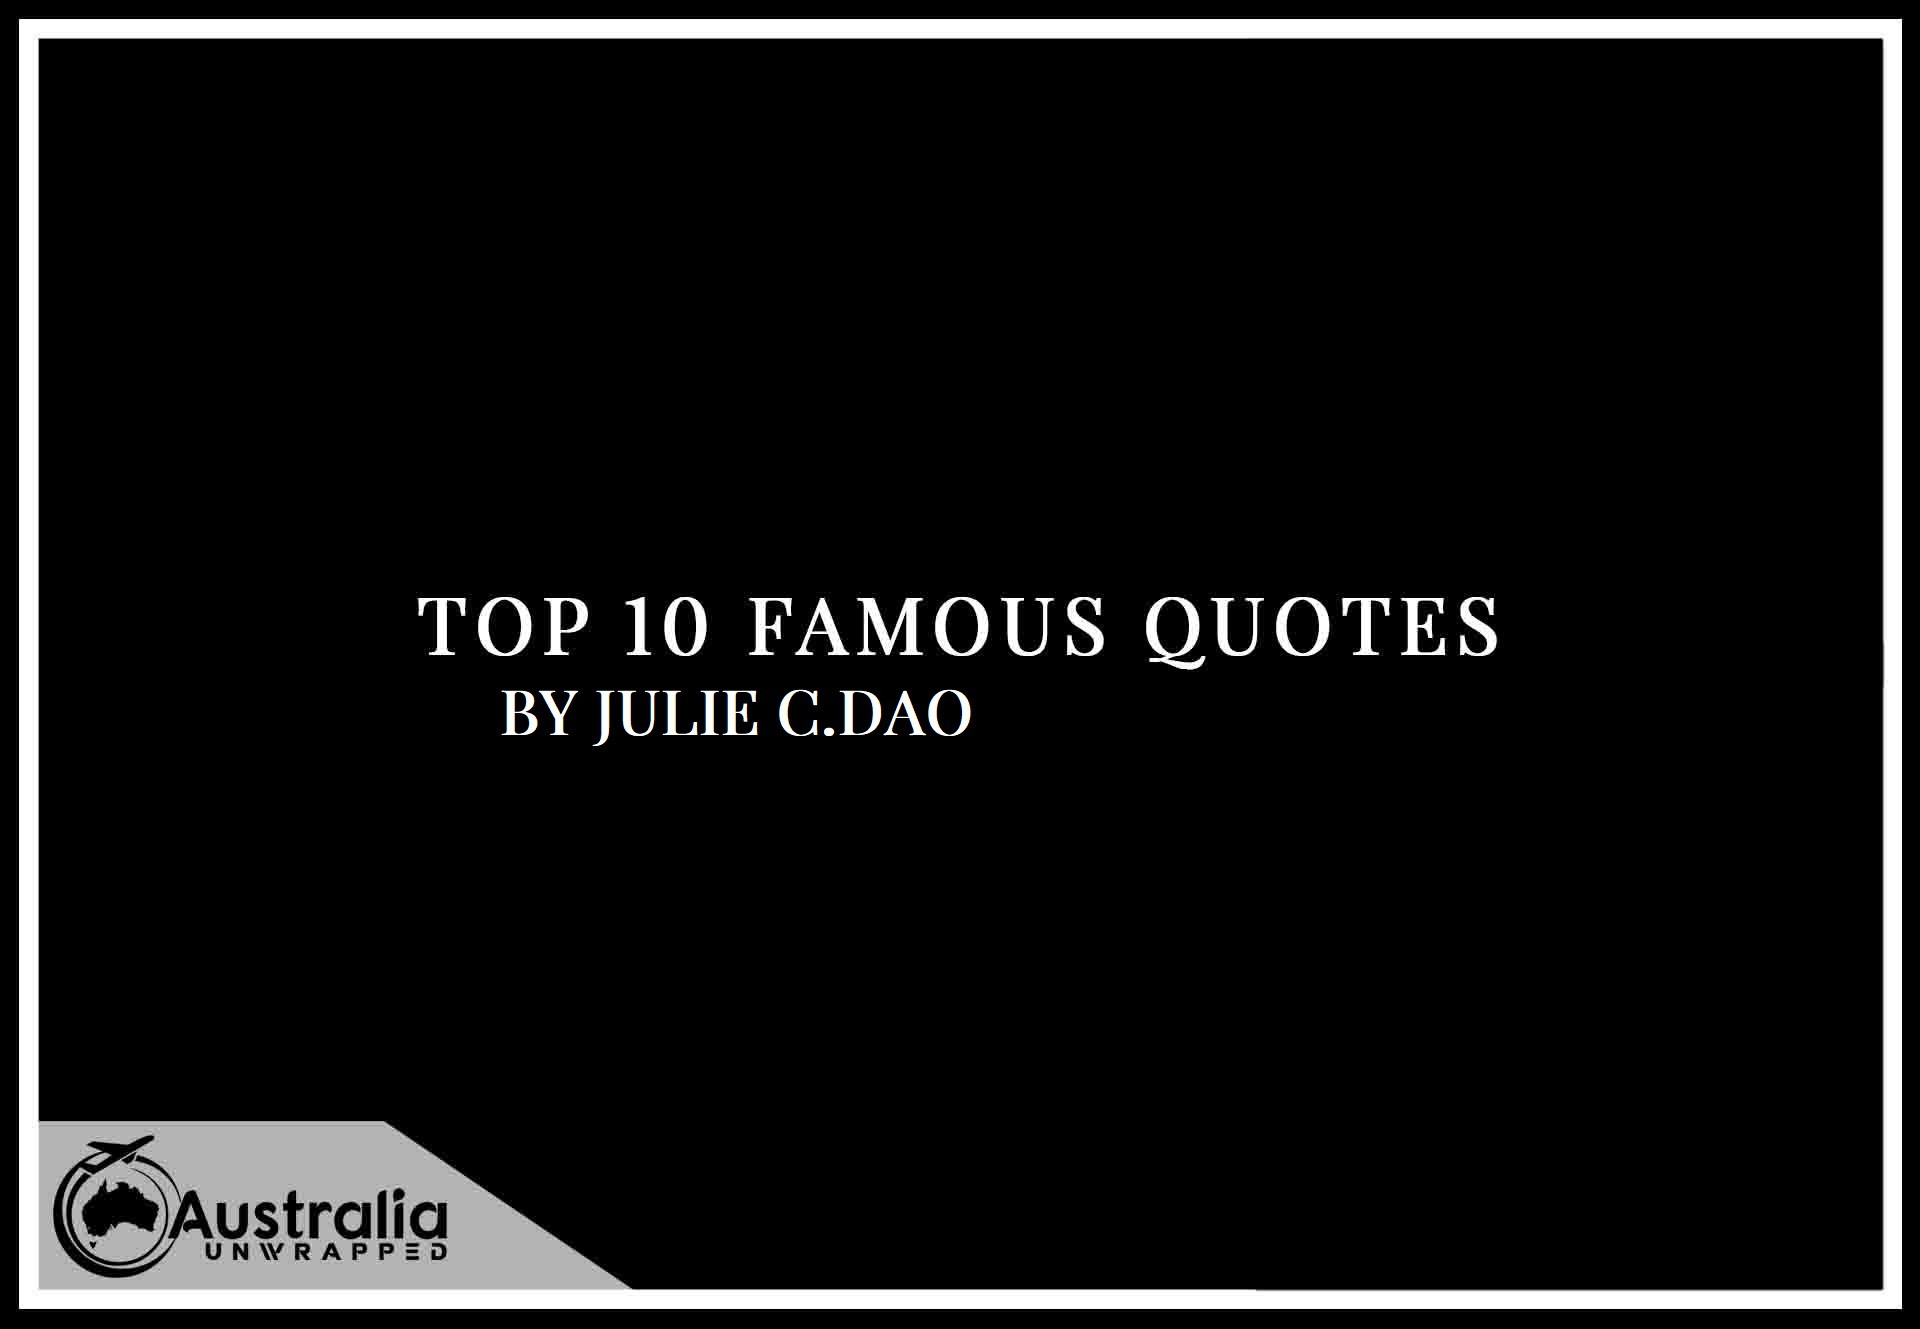 Top 10 Famous Quotes by Author Julie C. Dao